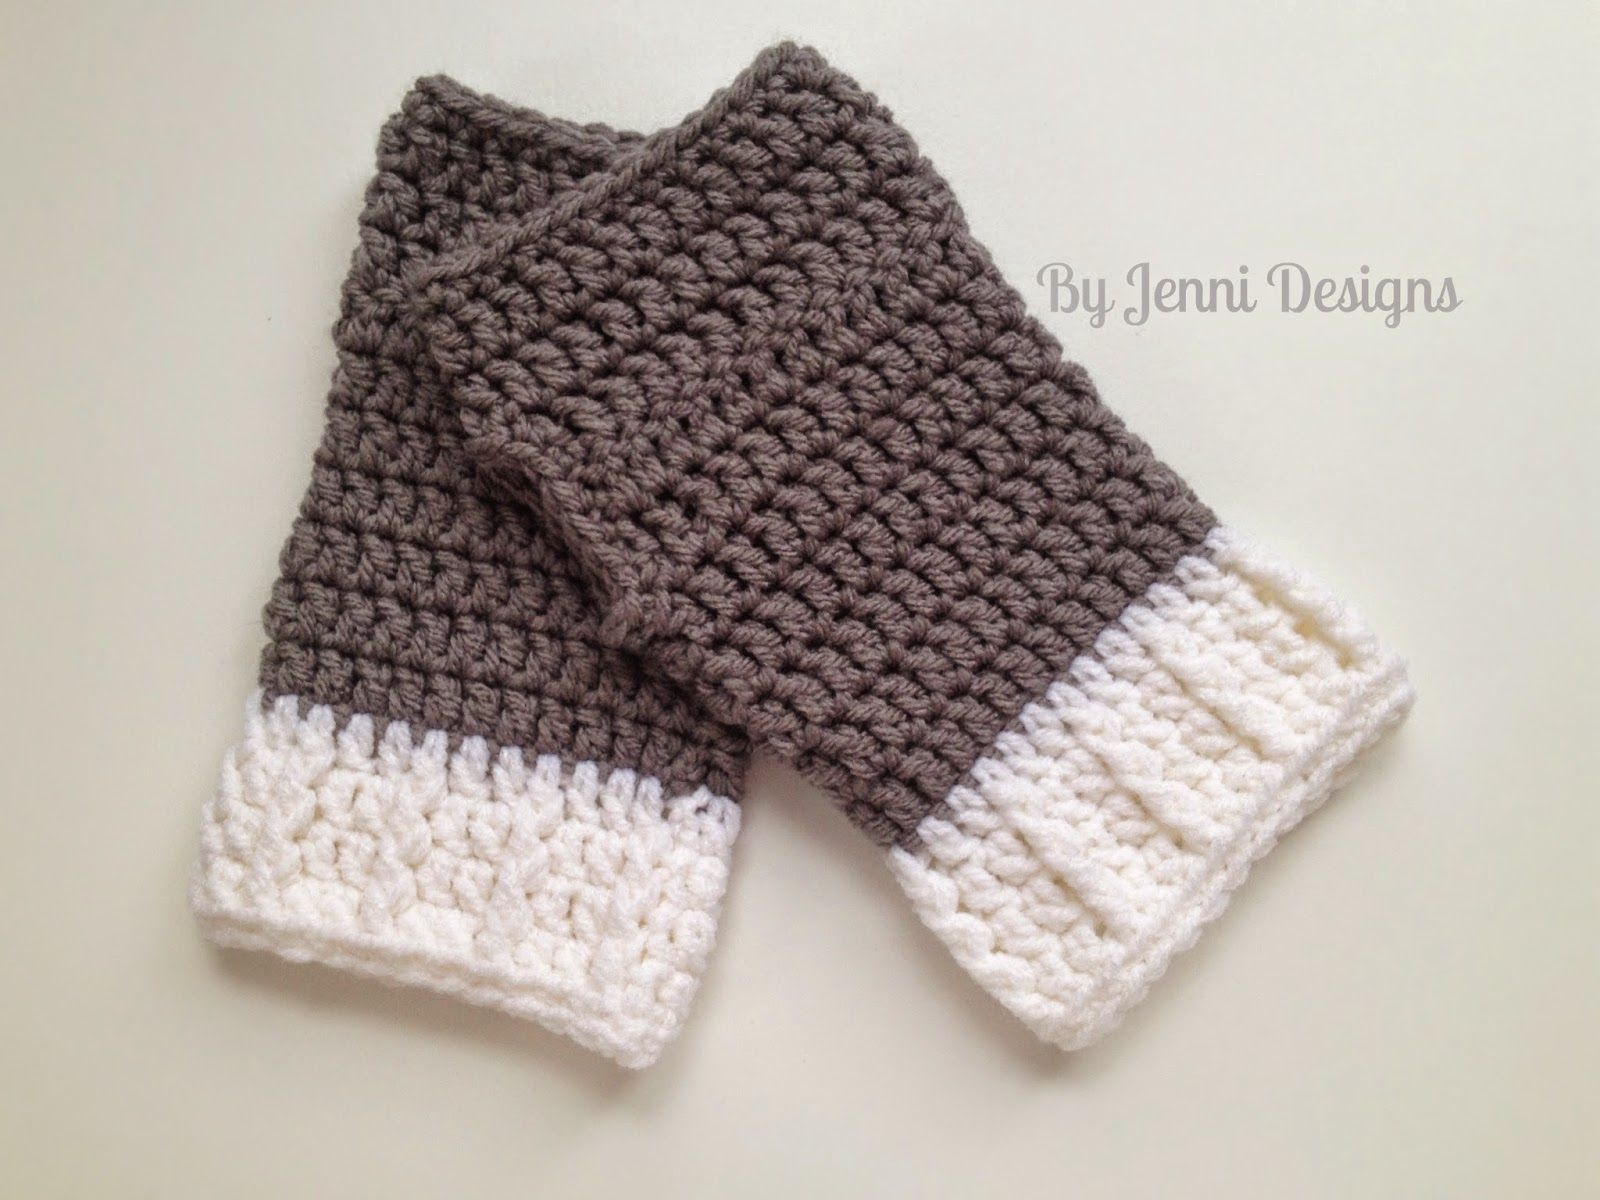 By jenni designs free crochet pattern easy ribbed cuff by jenni designs free crochet pattern easy ribbed cuff fingerless gloves bankloansurffo Choice Image